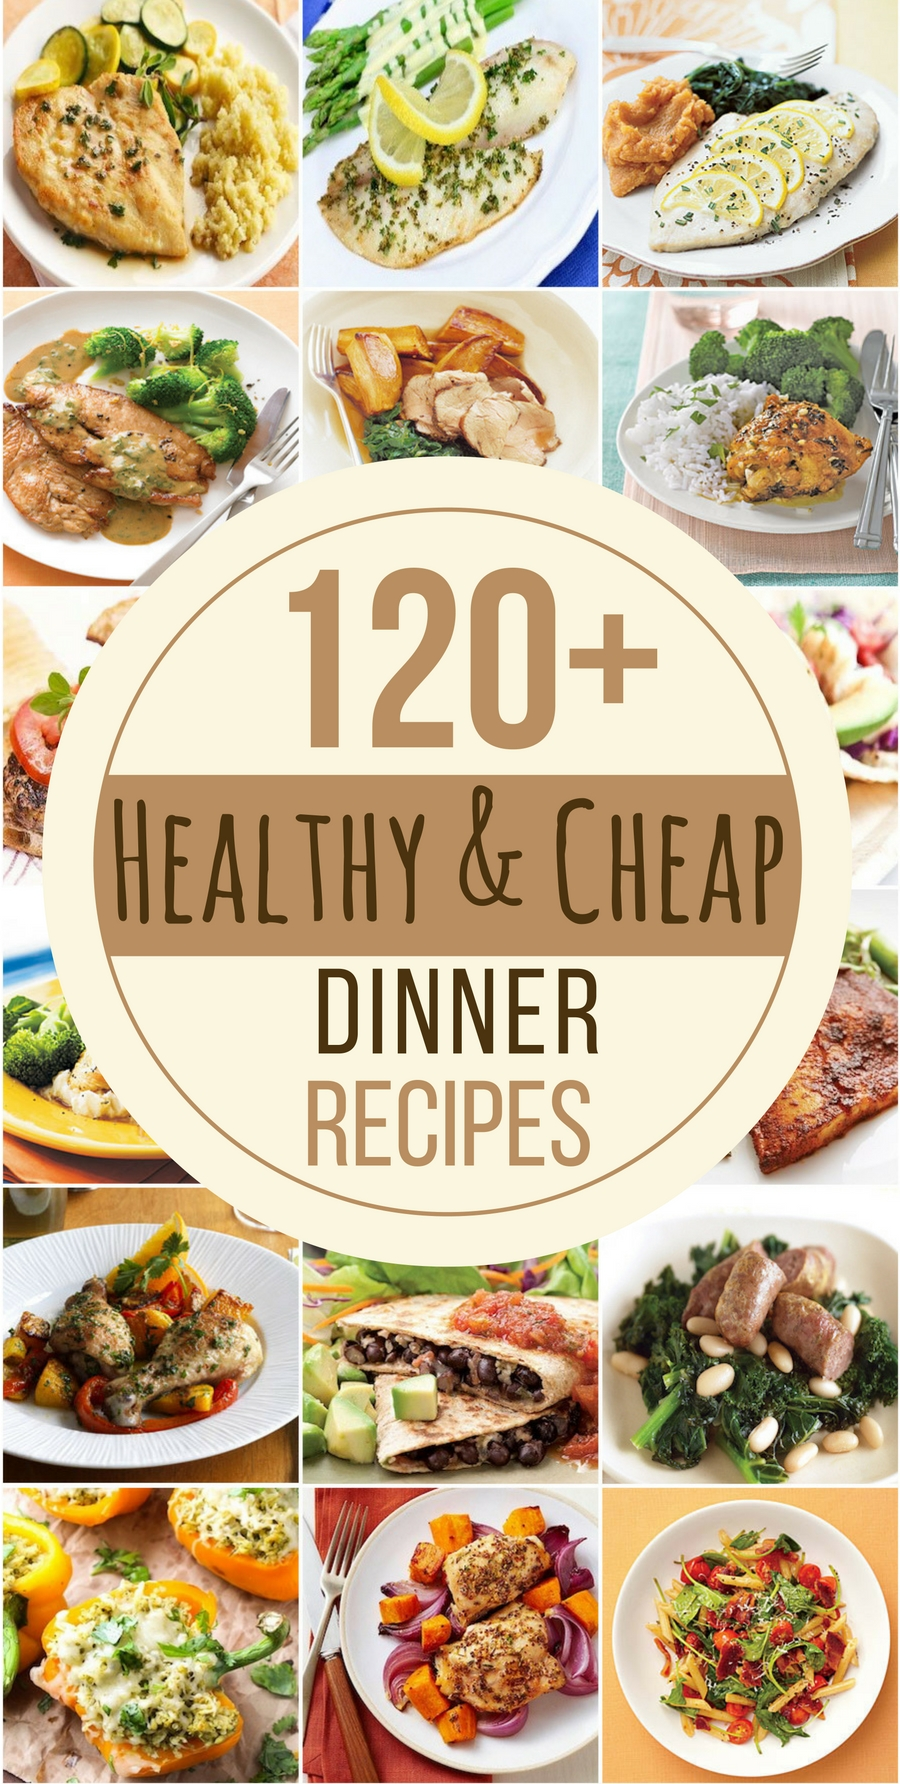 10 Lovely Inexpensive Dinner Ideas For Two 120 healthy and cheap dinner recipes healthy dinner recipes meal 2 2020